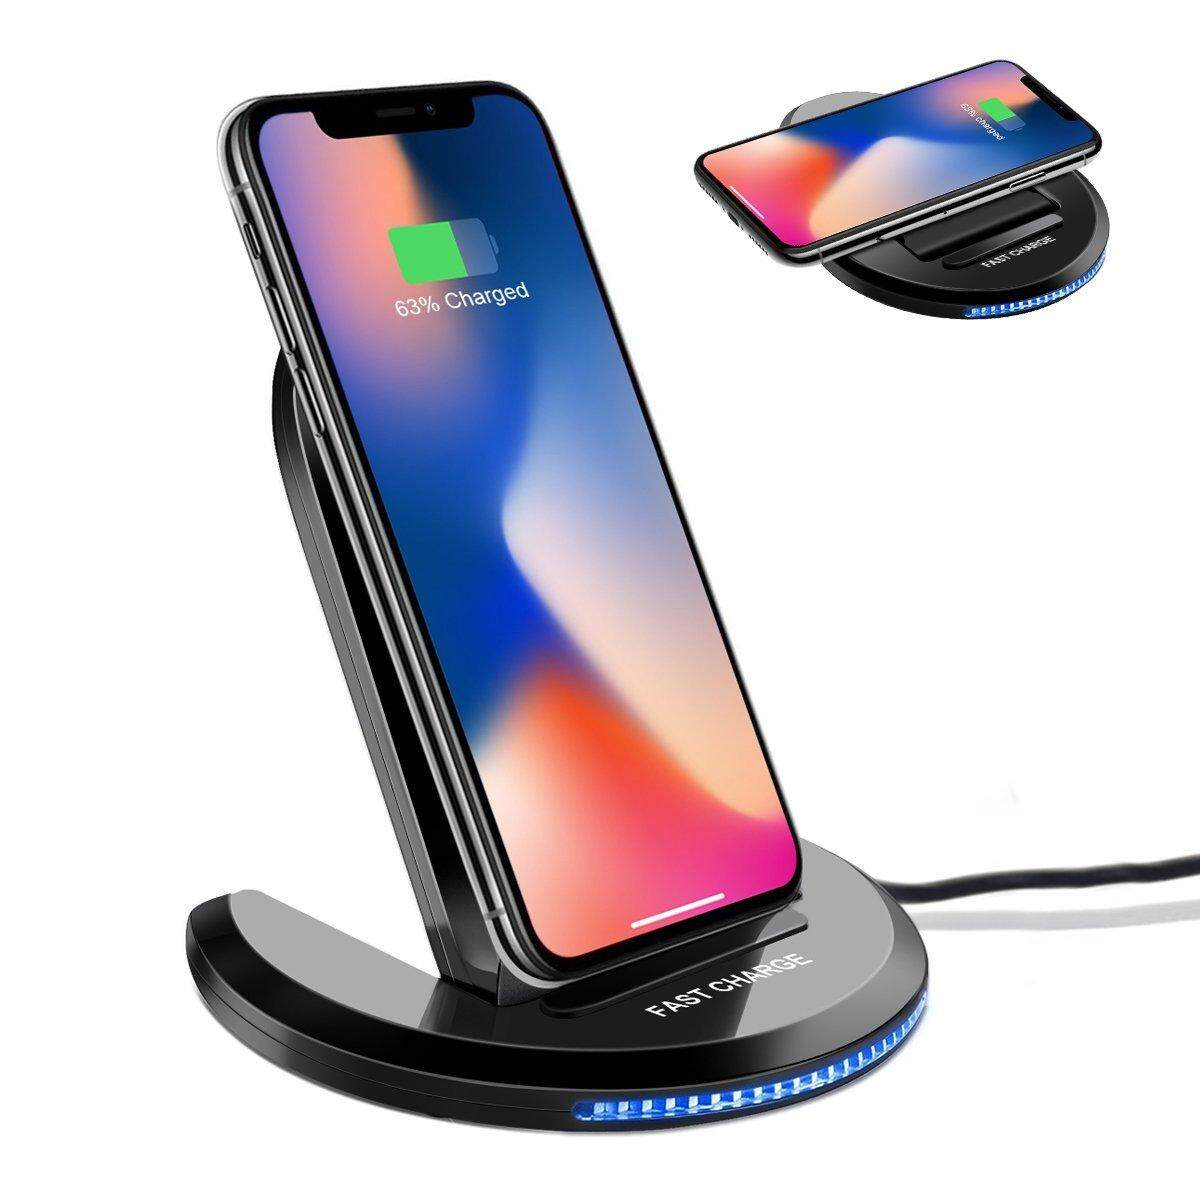 YSLP Fast Wireless Charger, iPhone X Wireless Charger 10W Qi Wireless Charging Pad Stand for Samsung Galaxy S9 Plus S9+ Note 8 S8 plus S7 S6 galaxy s7 iPhone X 8 8 Plus and All Qi-Enabled Devices - intl